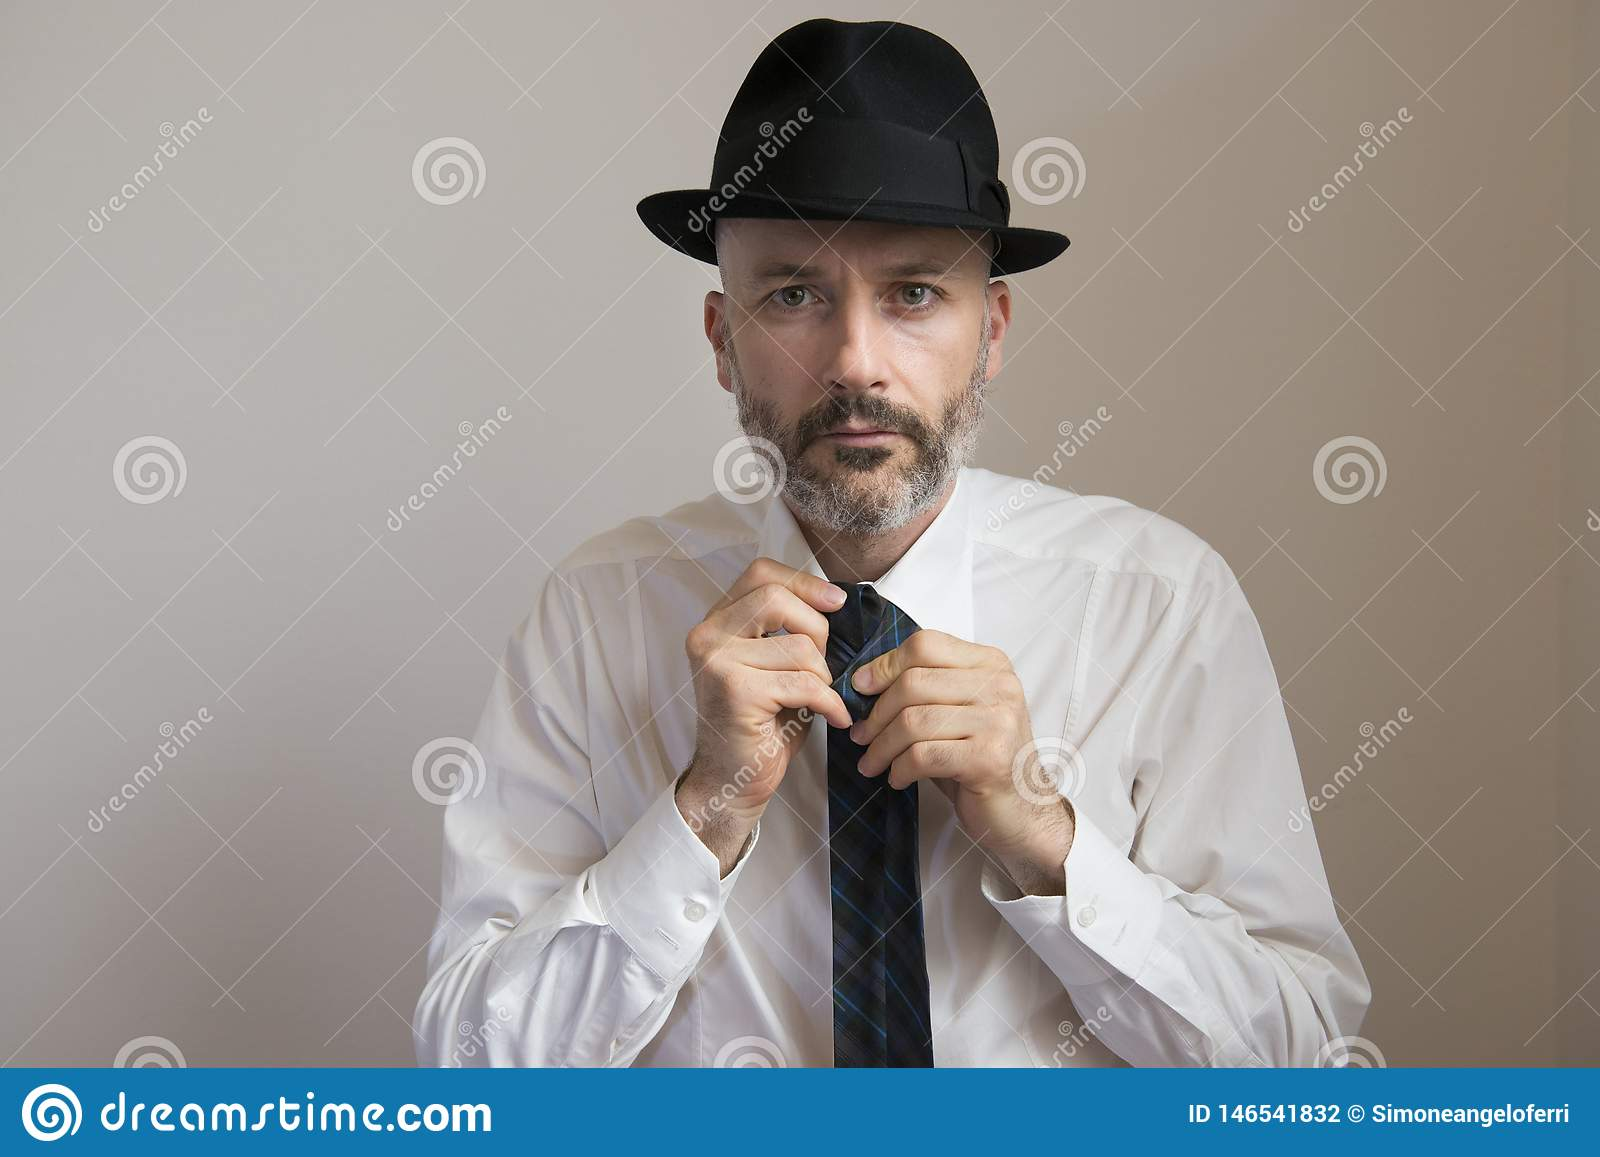 Adult man with hat and beard is knotting his necktie